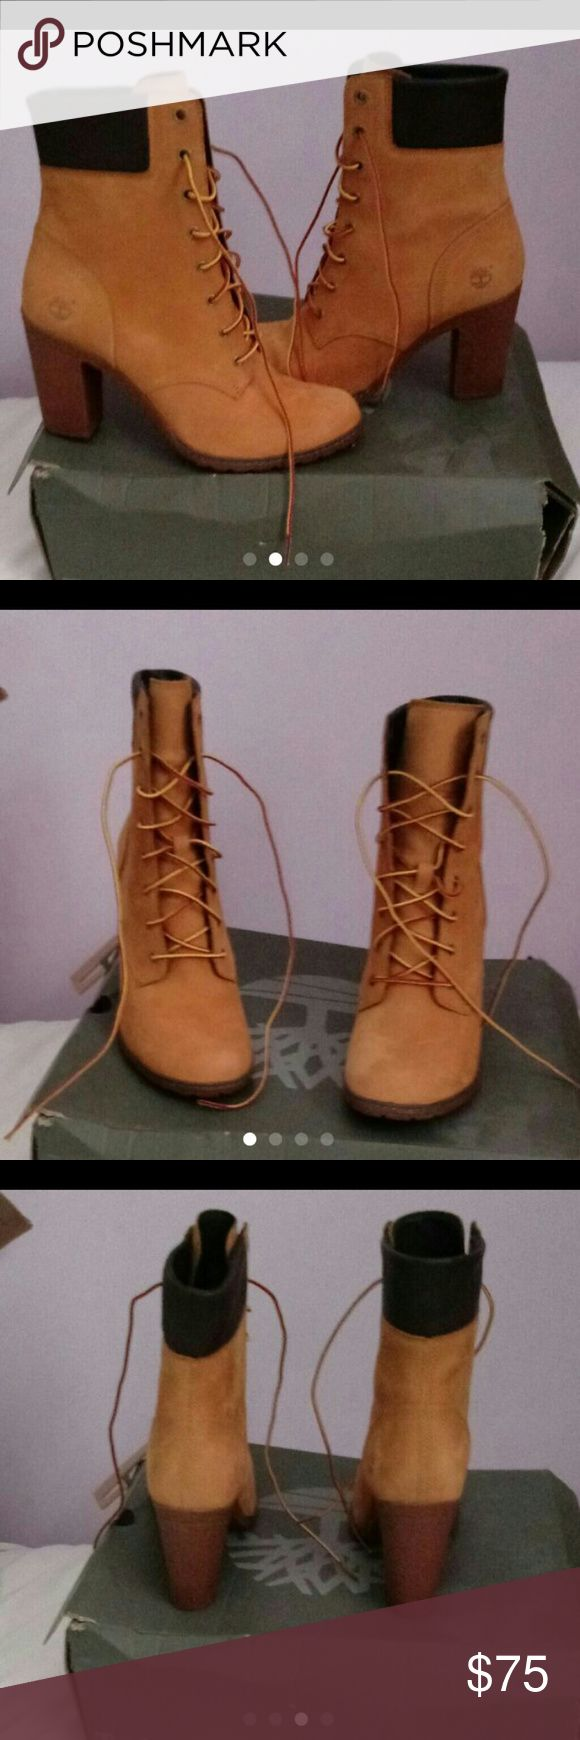 Ankle timberland heel boots Timberland ankle heel boots never worn Timberland Shoes Ankle Boots & Booties